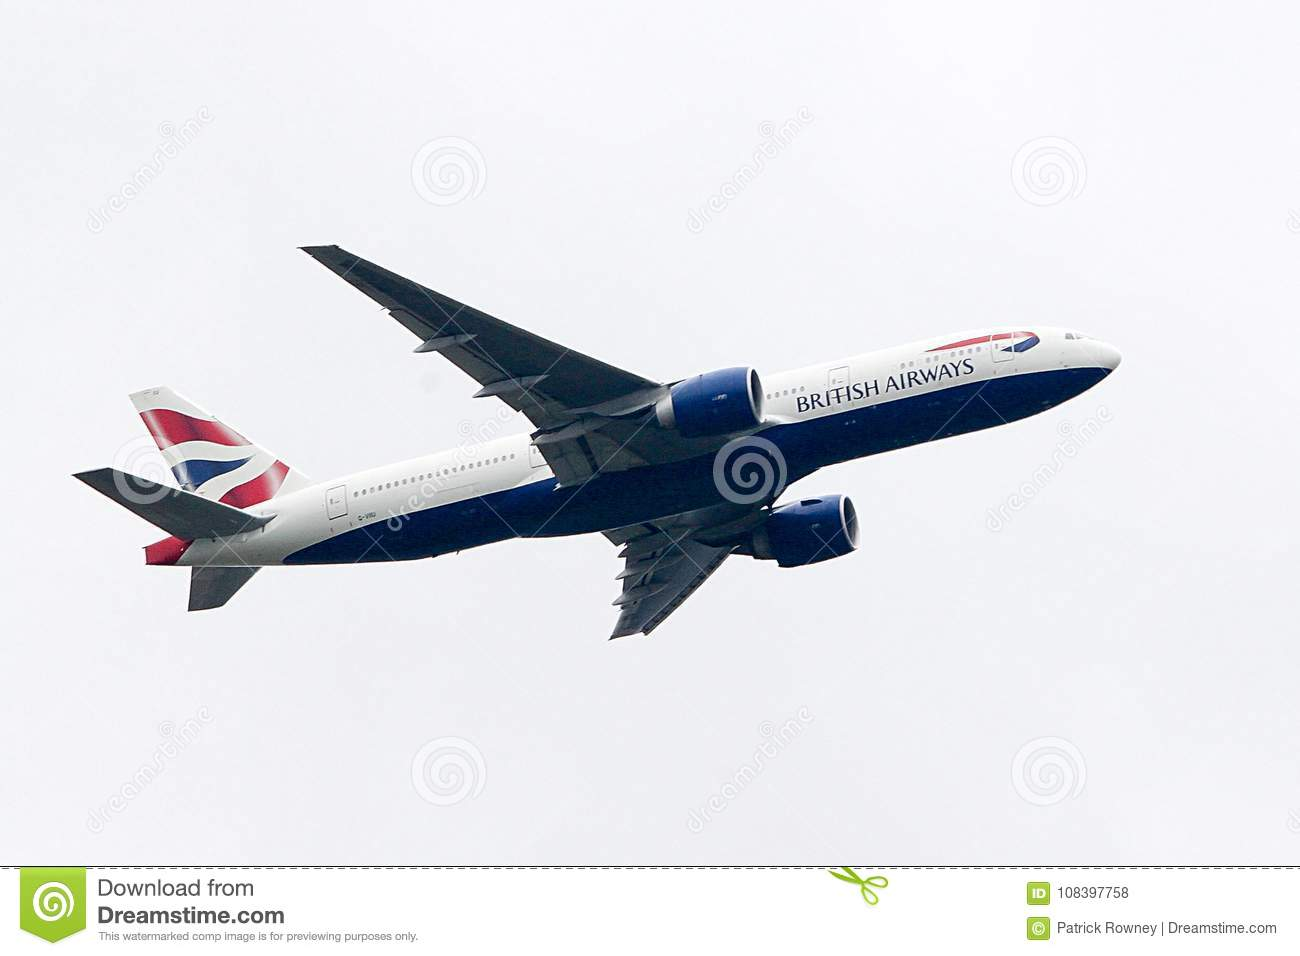 British Airways Boeing 777 taking-off